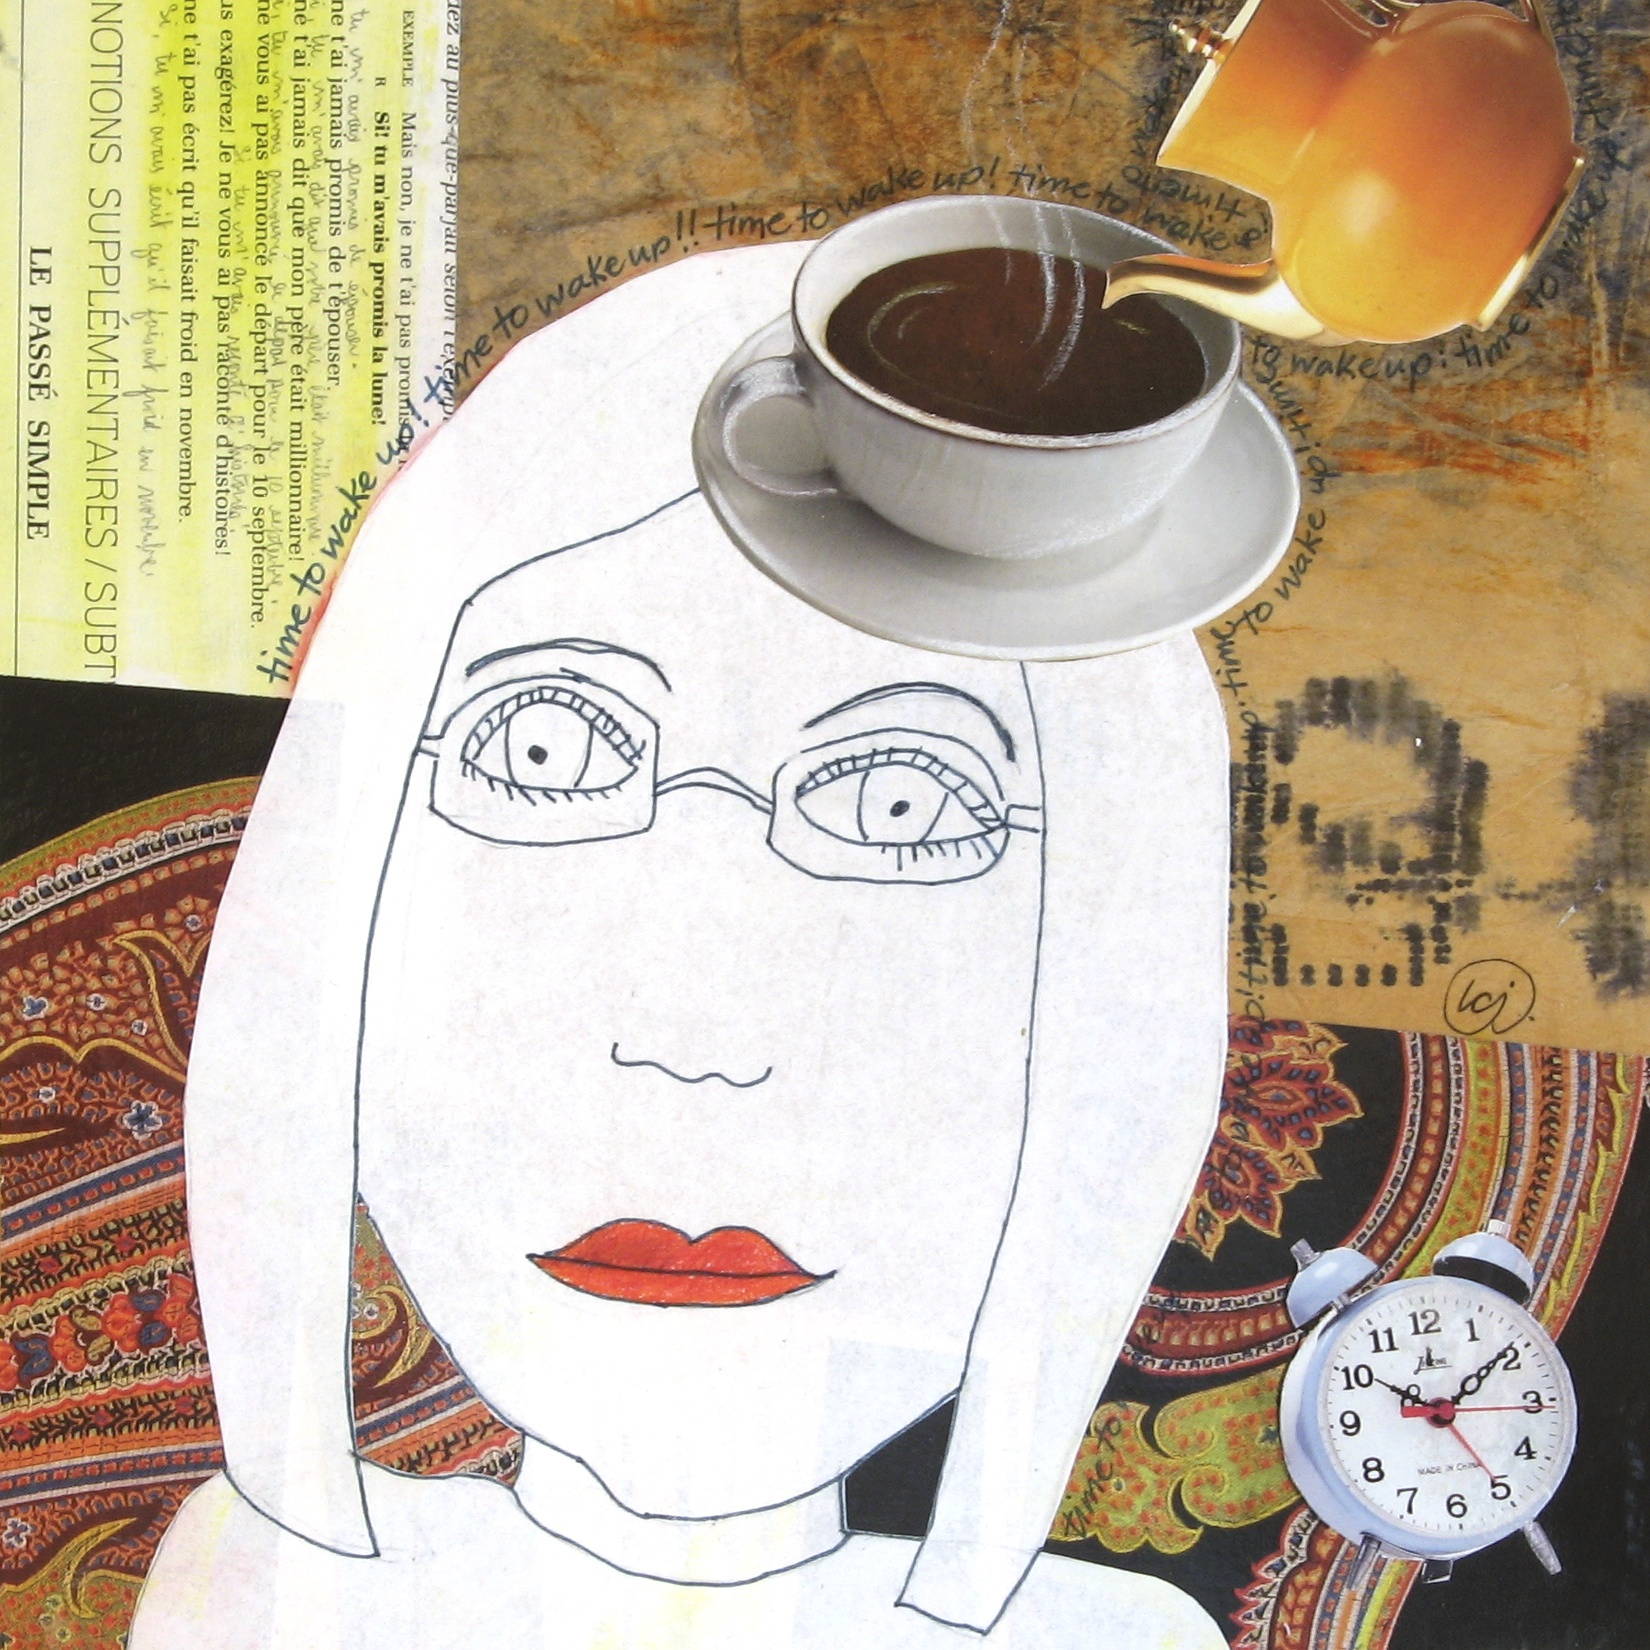 French Roast Please!  archival print   8.5 x 8.5 image   $50